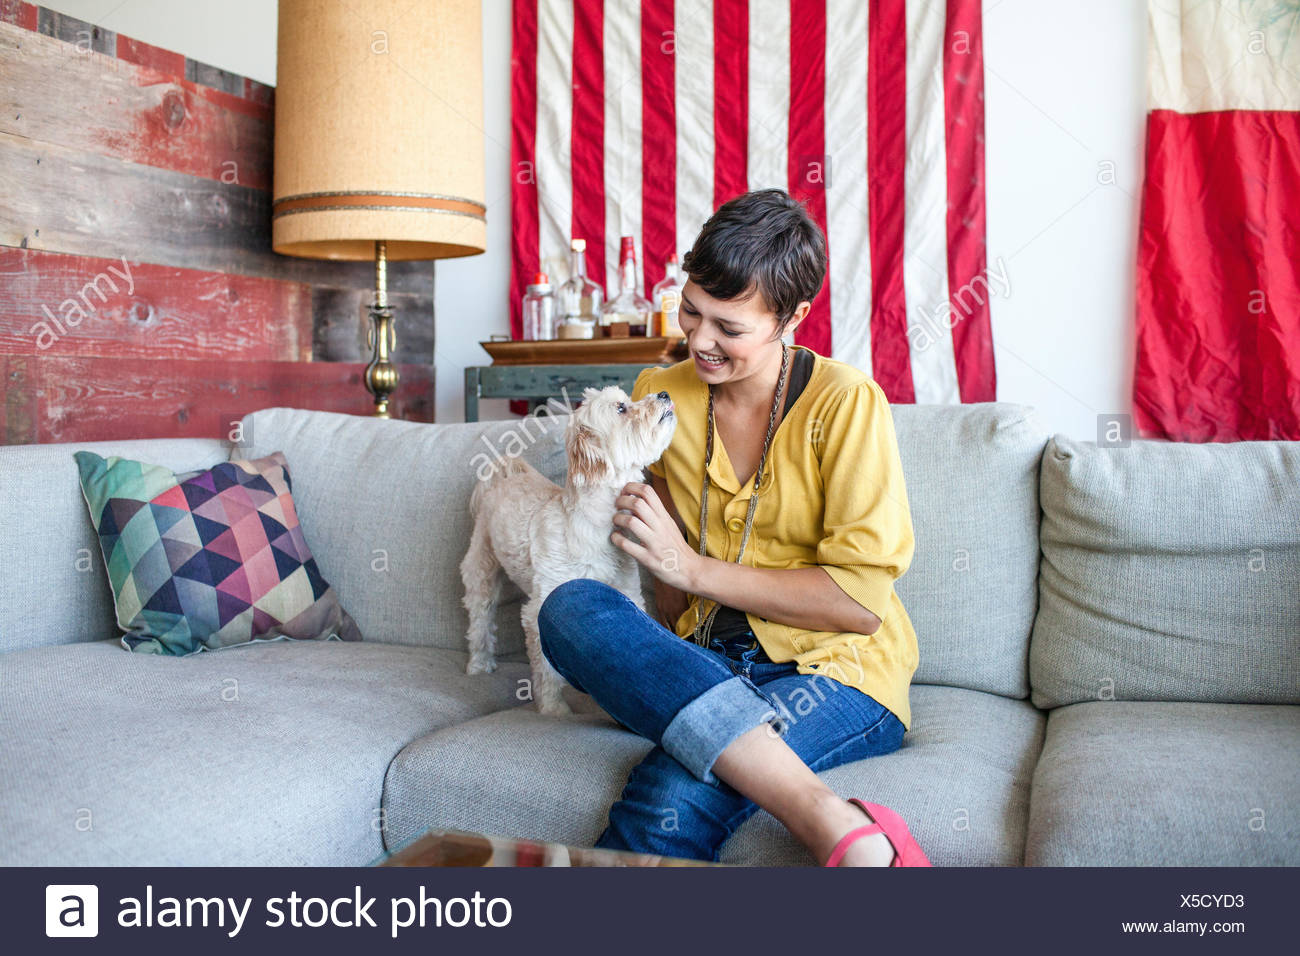 Young woman petting dog on living room sofa - Stock Image